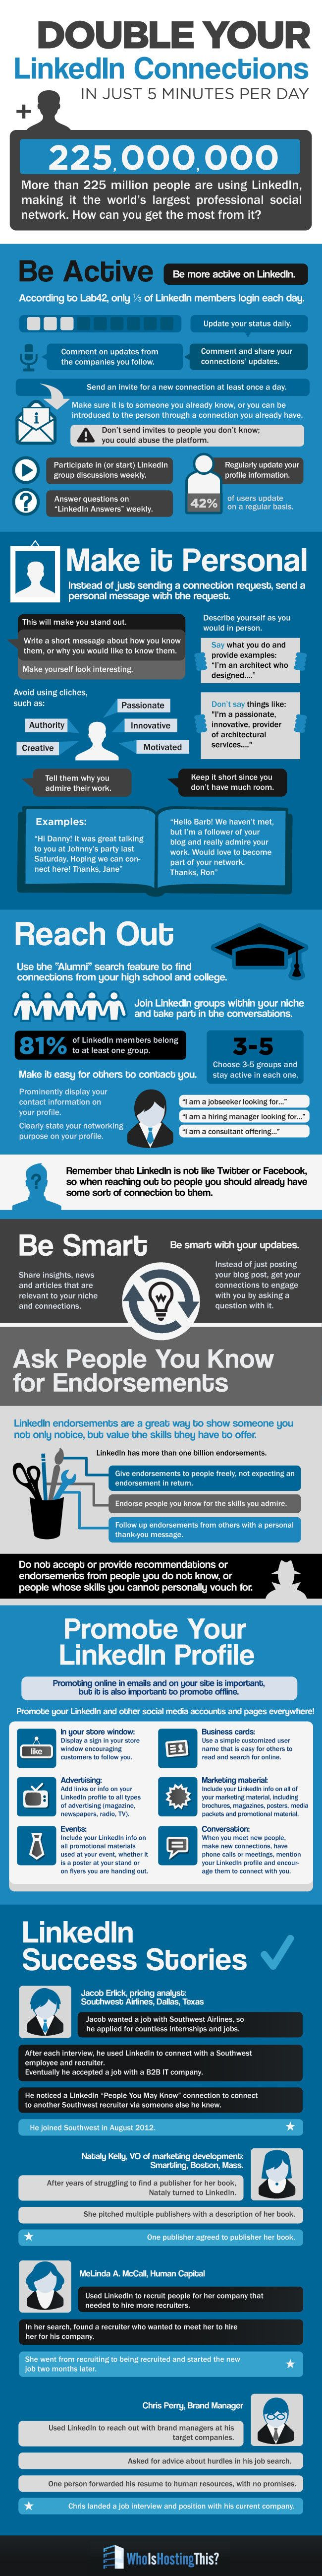 Double your #LinkedIn Connections in just 5 minutes per day - #infographic #Socialmediatips